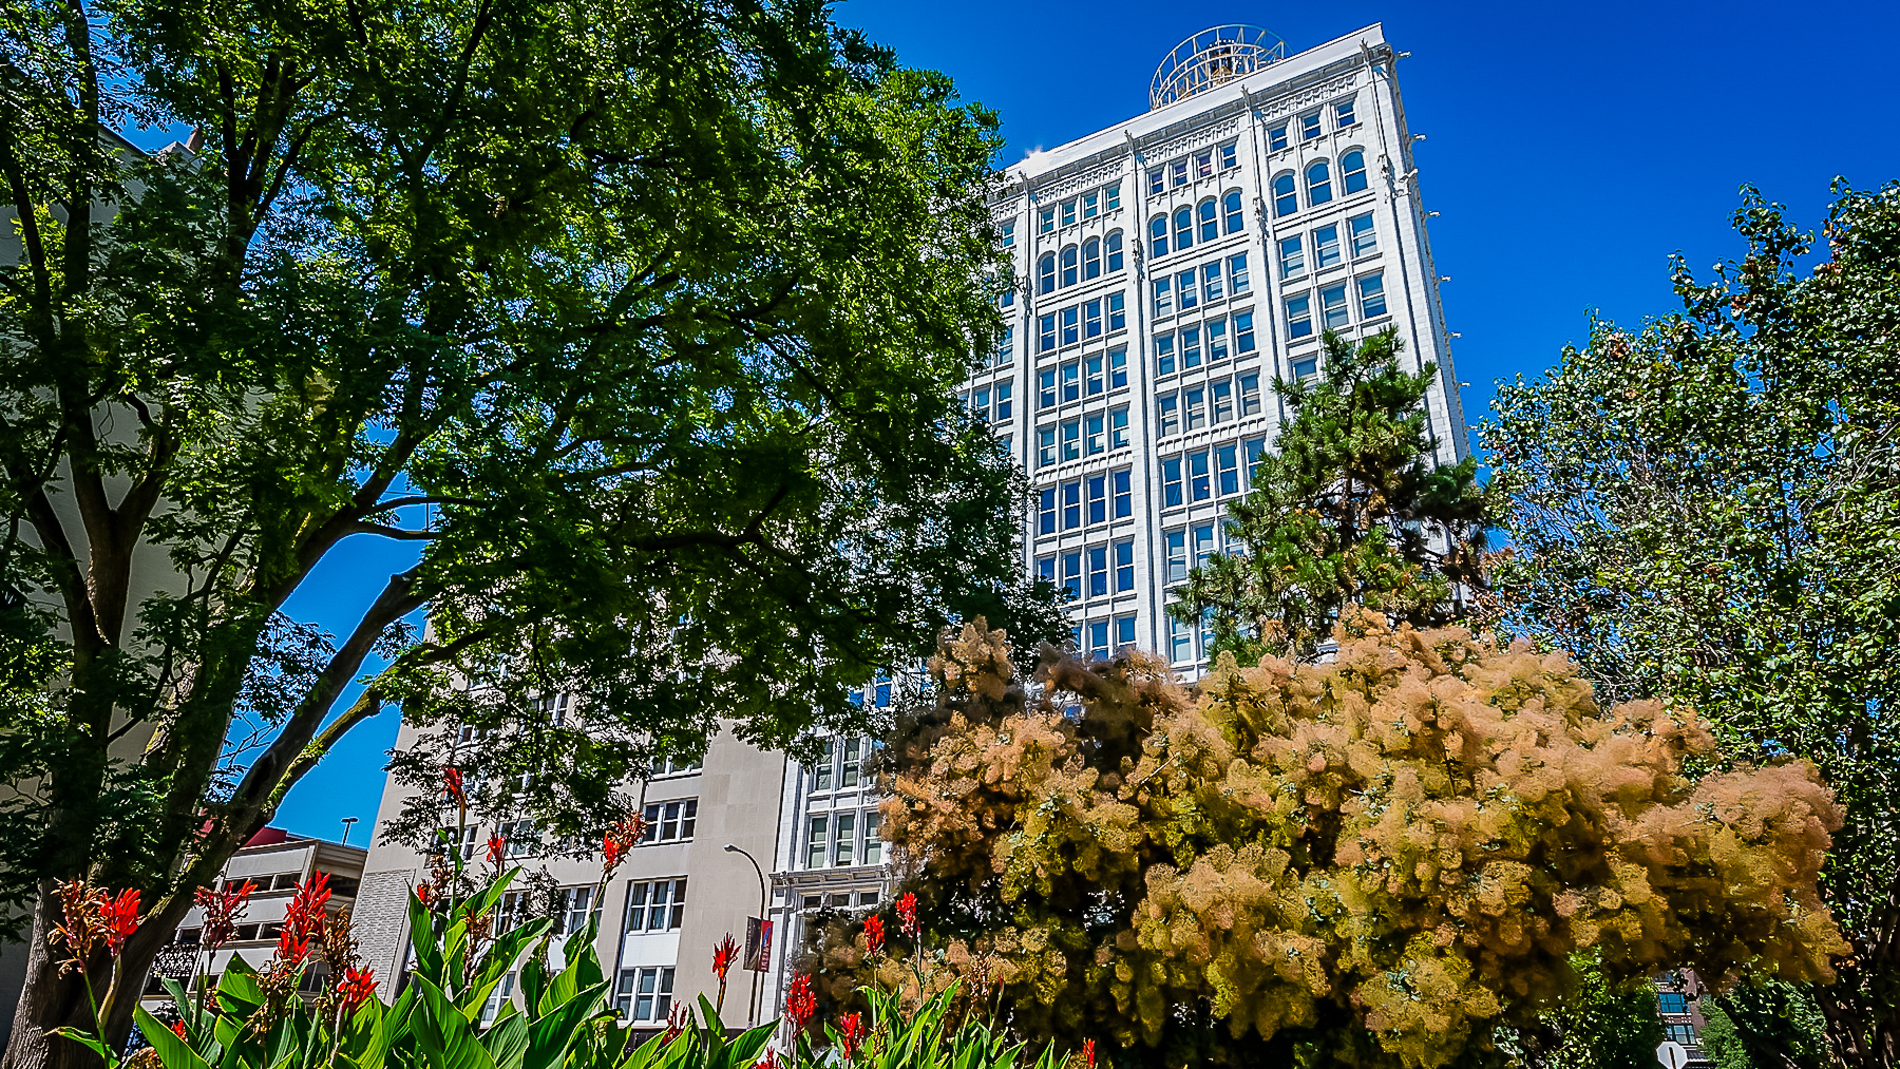 Condominium for Sale at 1501 Locust Street # 501, St. Louis, MO 63103 1501 Locust Street # 501 St. Louis, Missouri 63103 United States